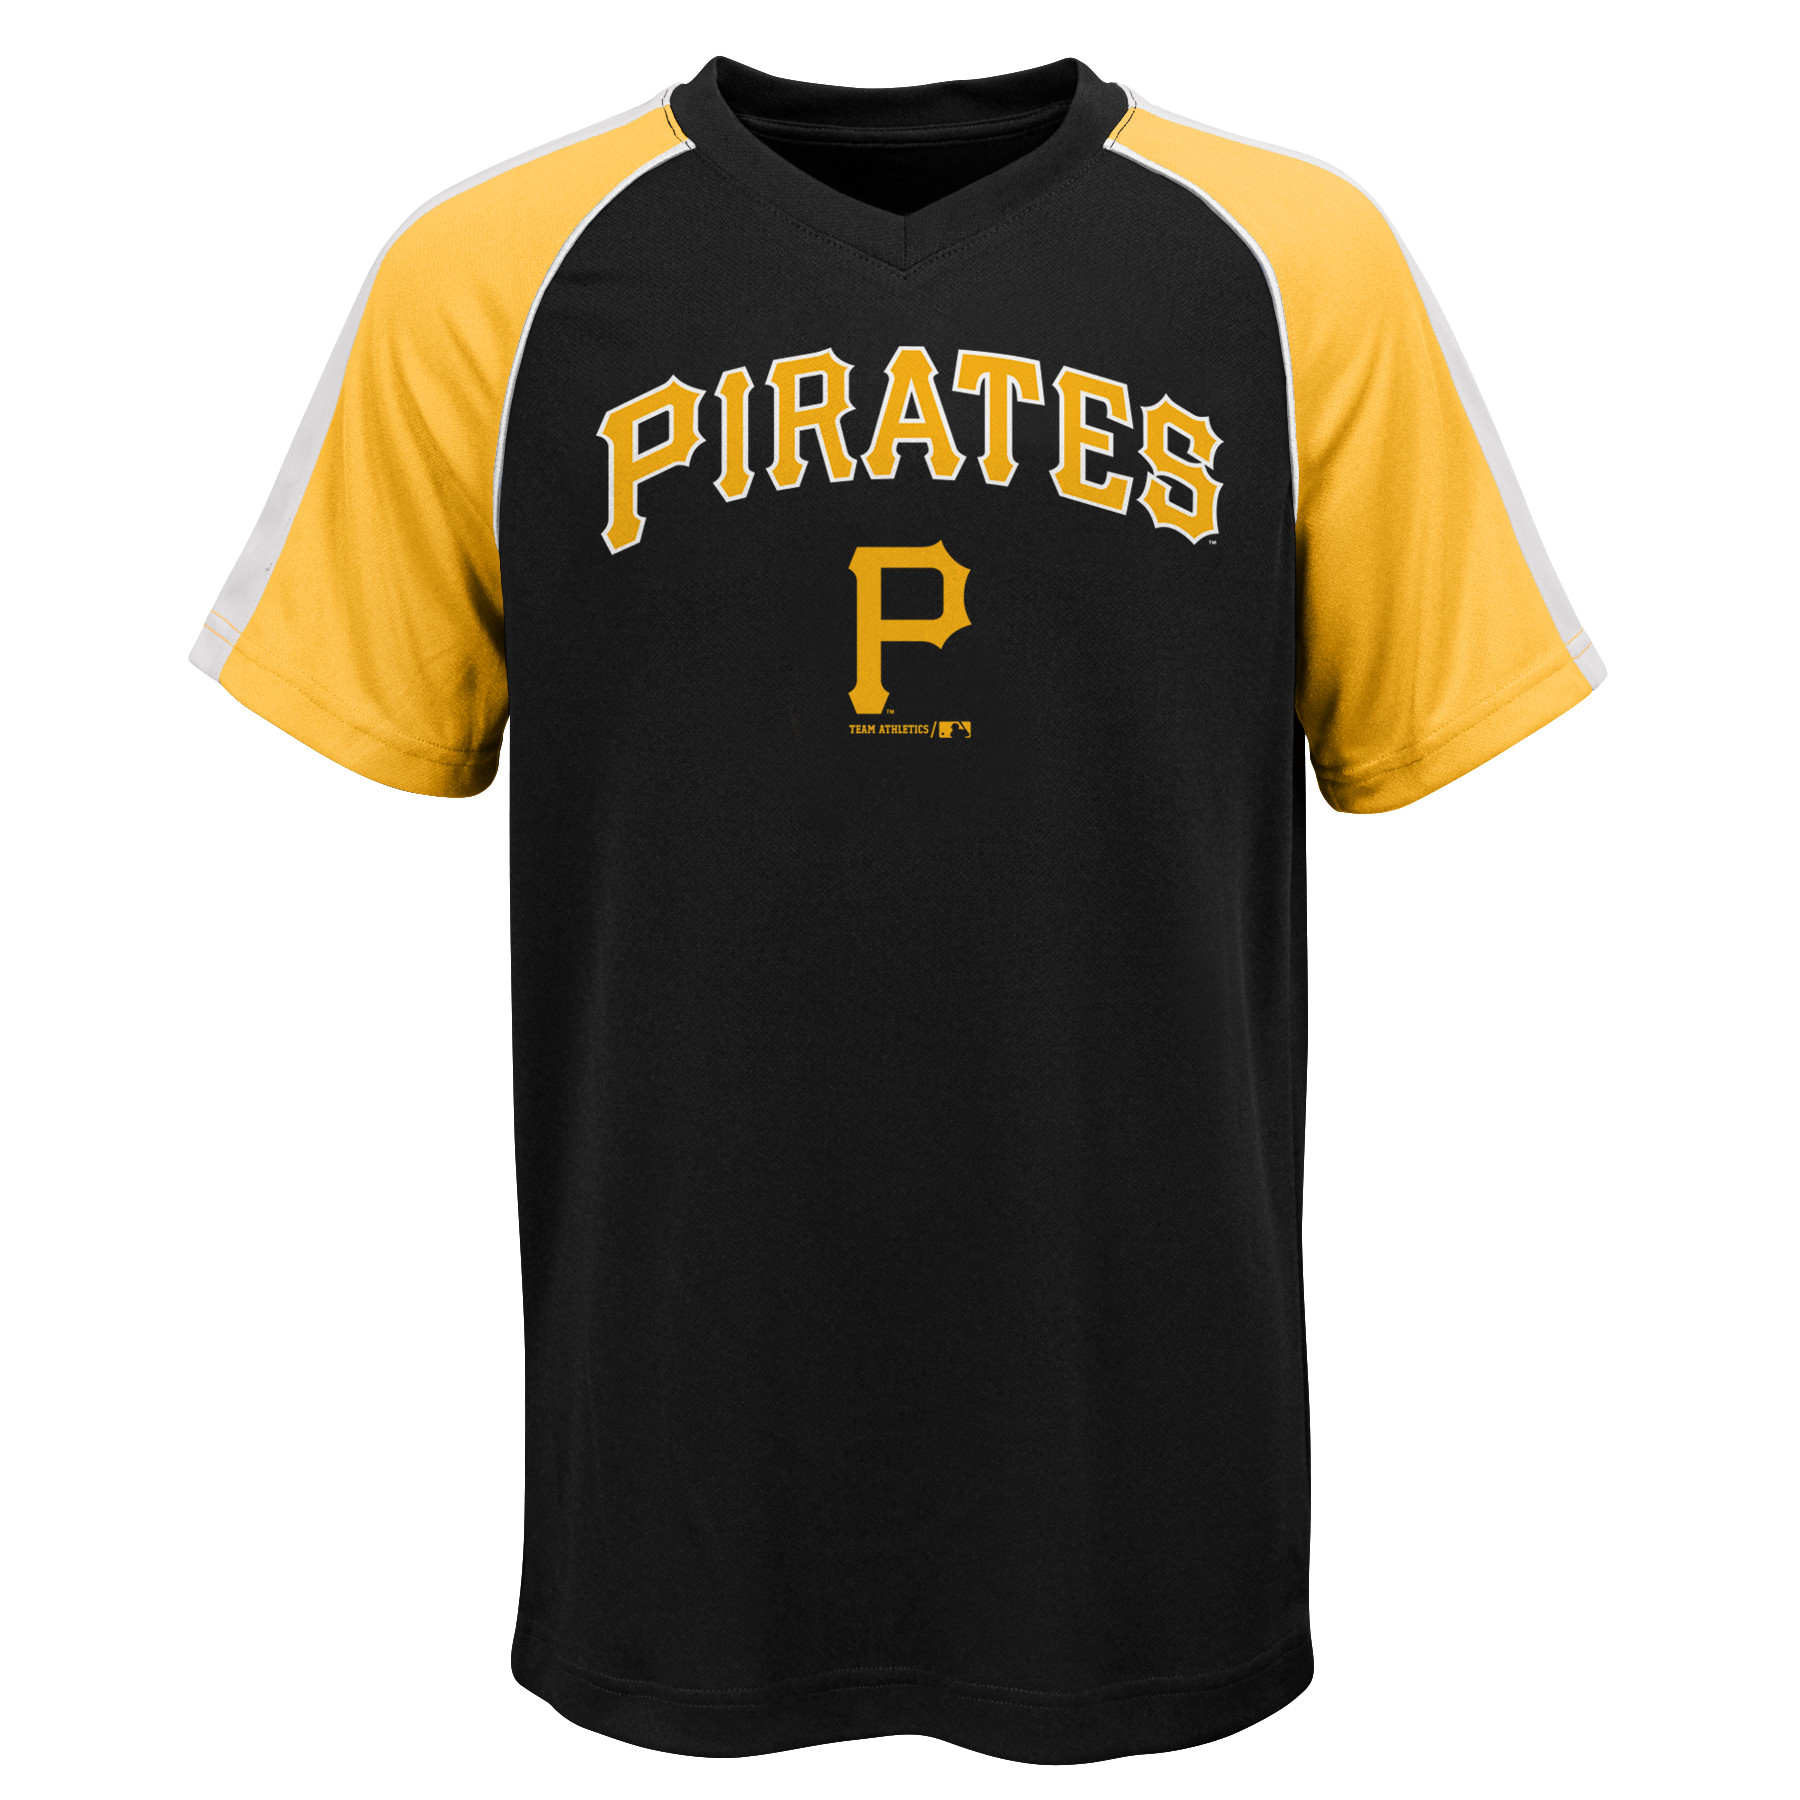 MLB Pittsburgh PIRATES TEE Short Sleeve Boys Fashion Jersey Tee 100% Polyester Pin Dot Mesh Jersey Team Tee 4-18